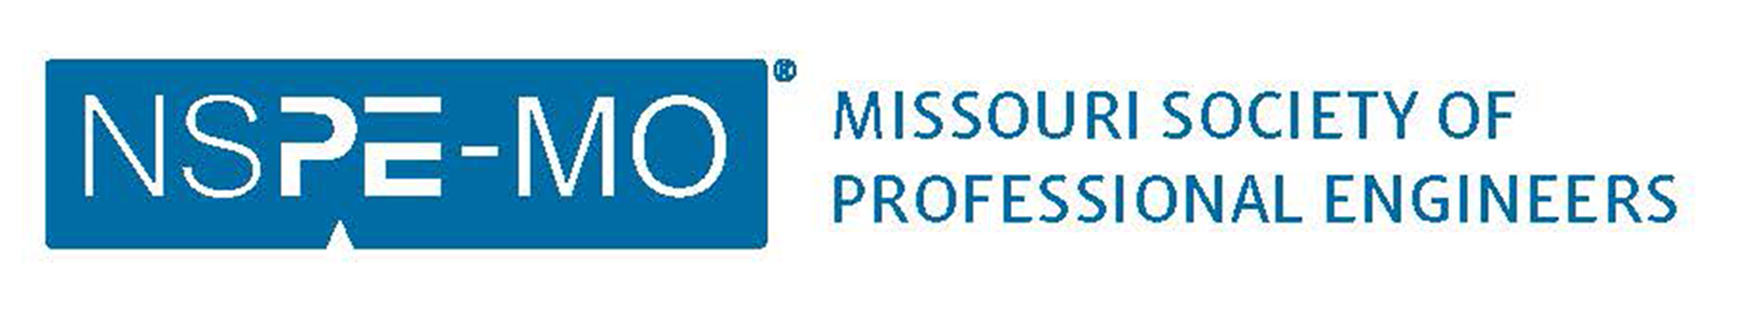 missouri society  professional engineers home